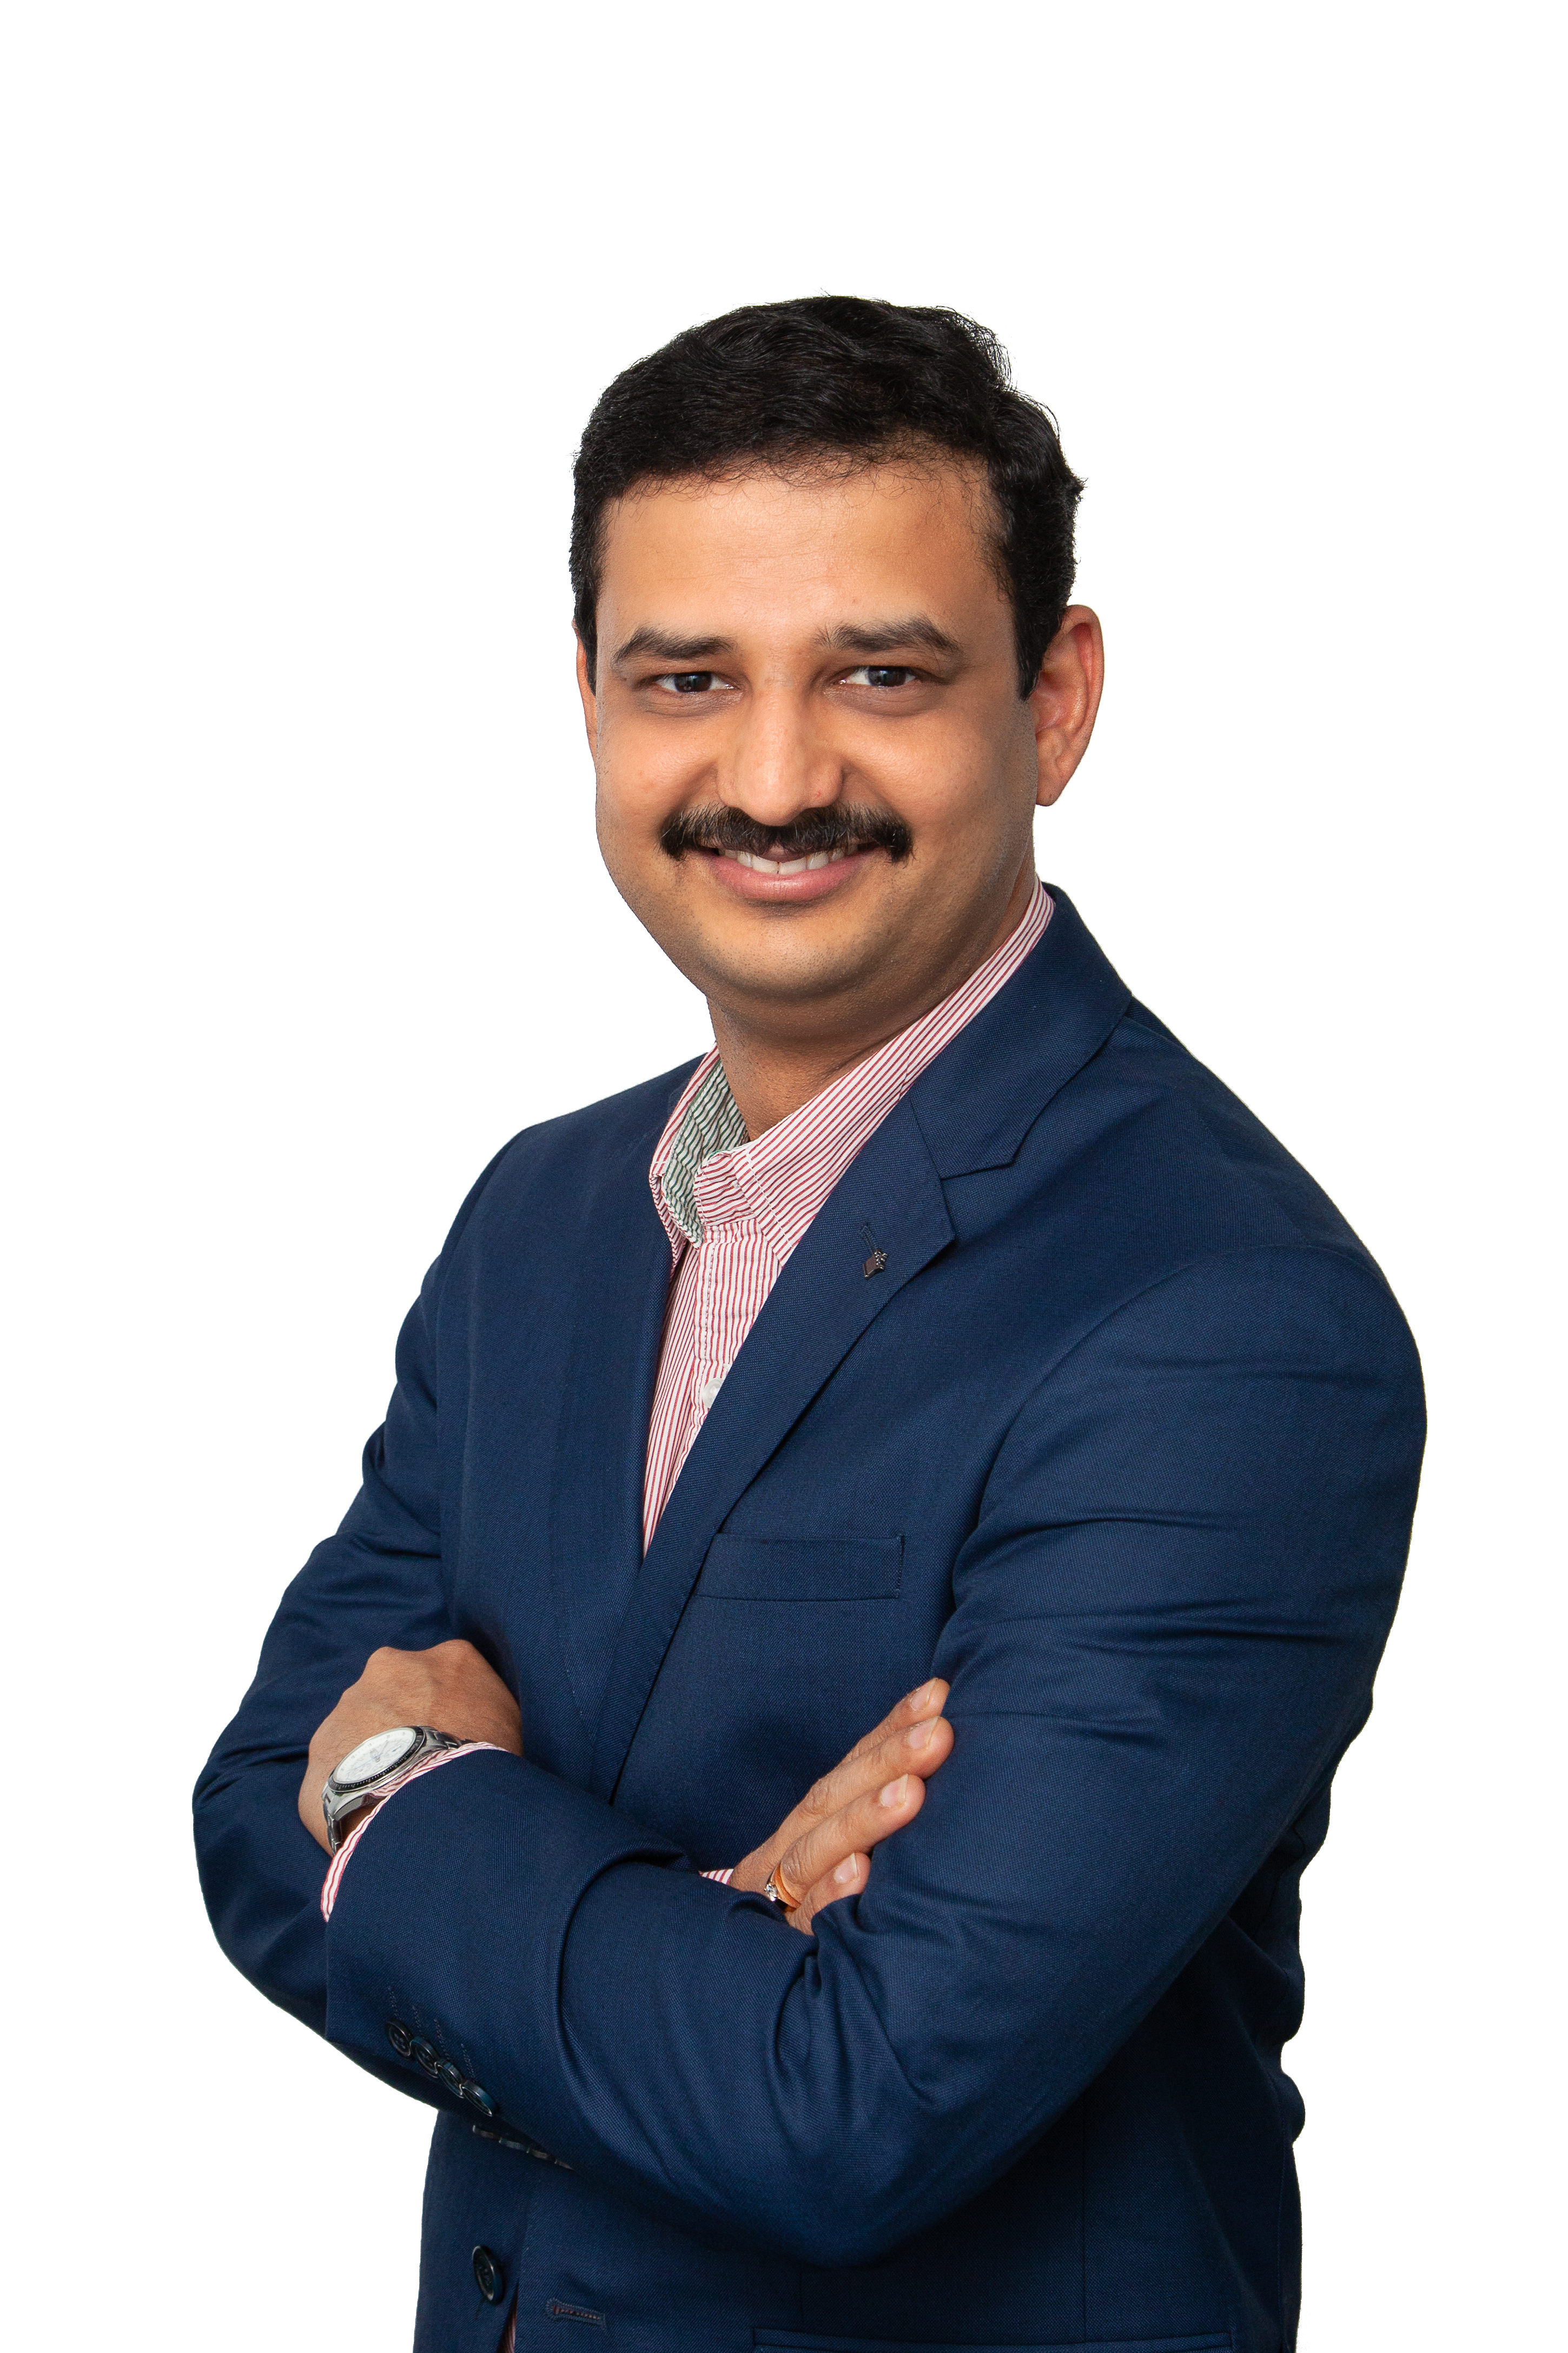 Rao-Harish Complexica Director, Applications Support & Information Security